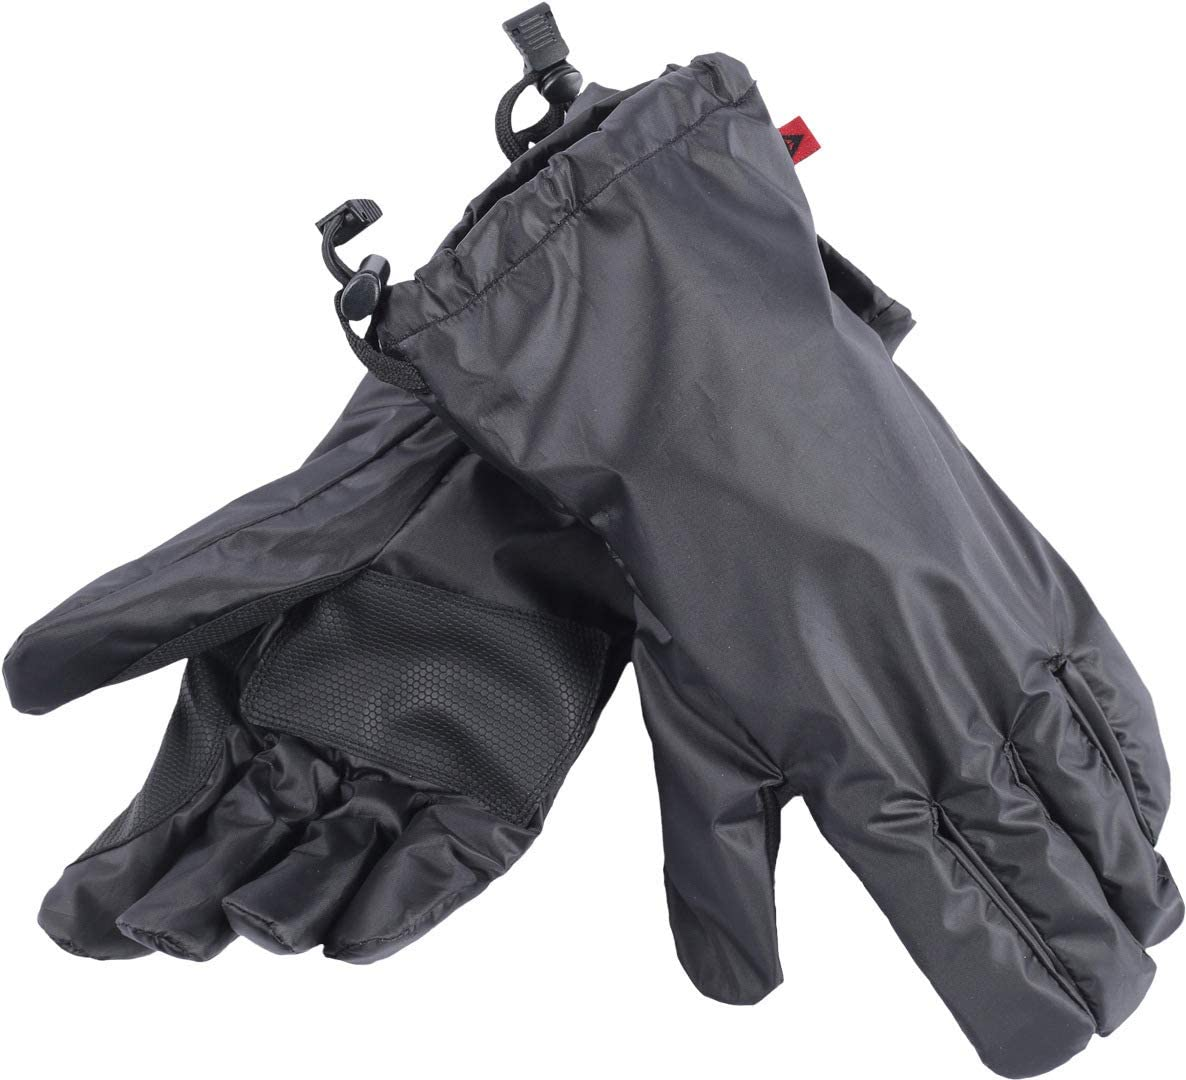 Mejor cubreguantes impermeable